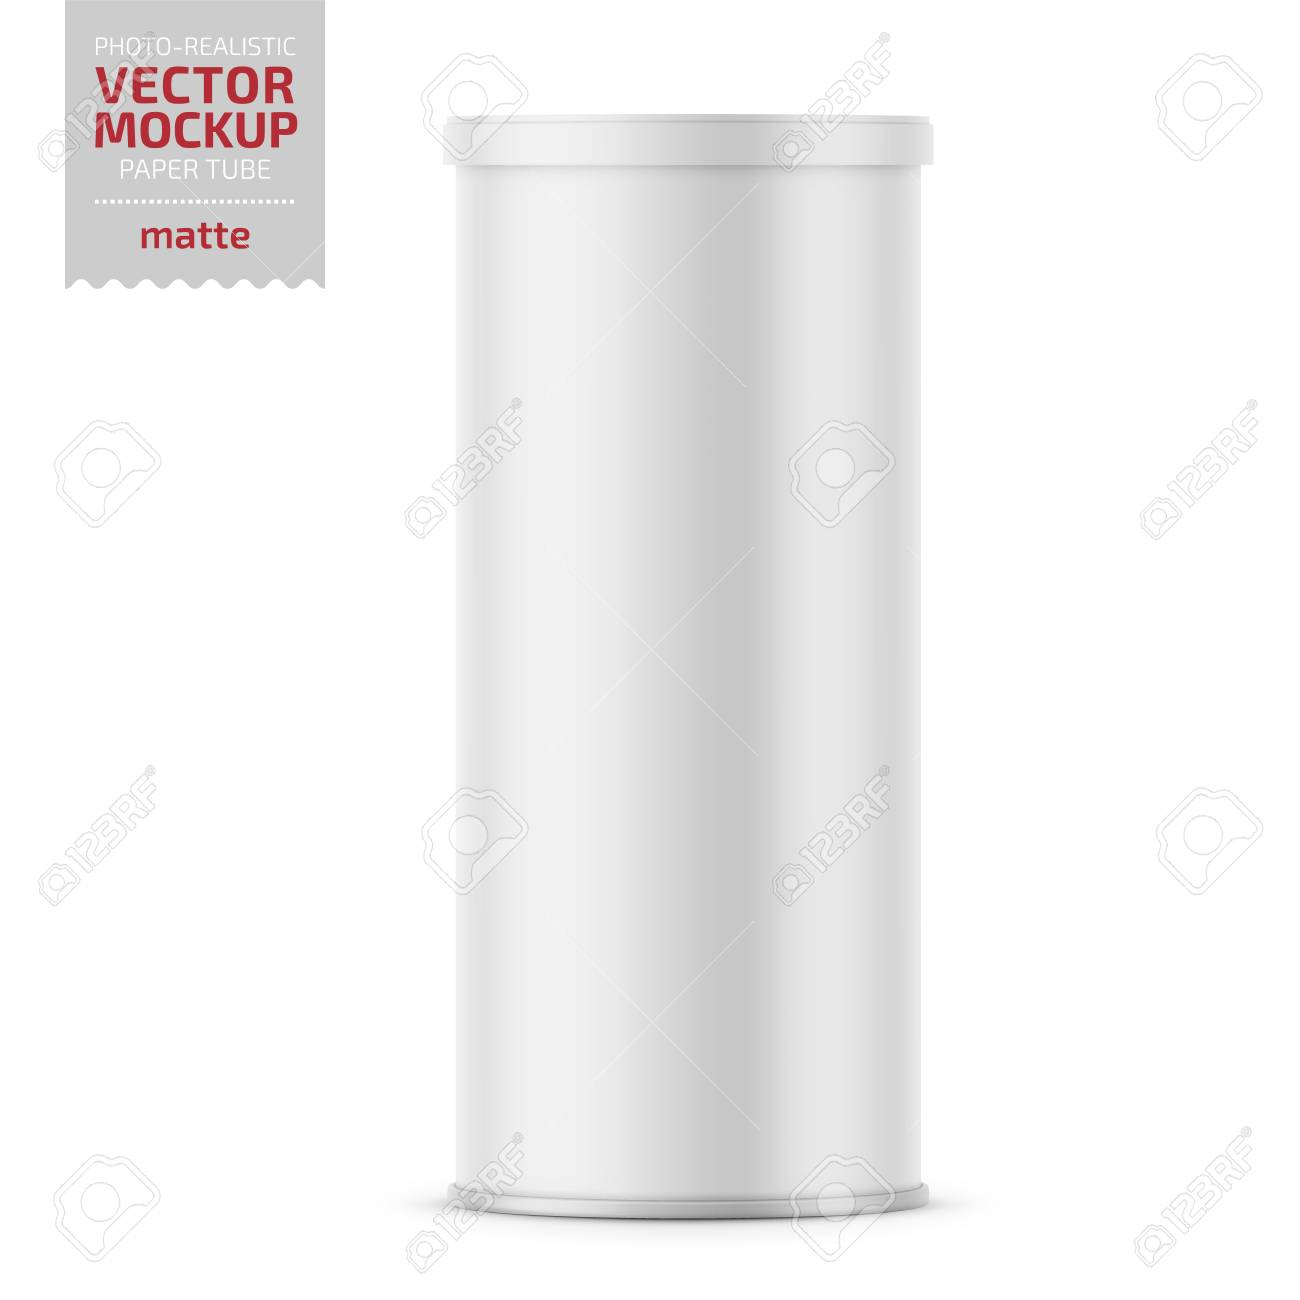 White matte paper tube with plastic lid for snacks, chips. Photo-realistic packaging mockup template. Vector 3d illustration. - 109628254